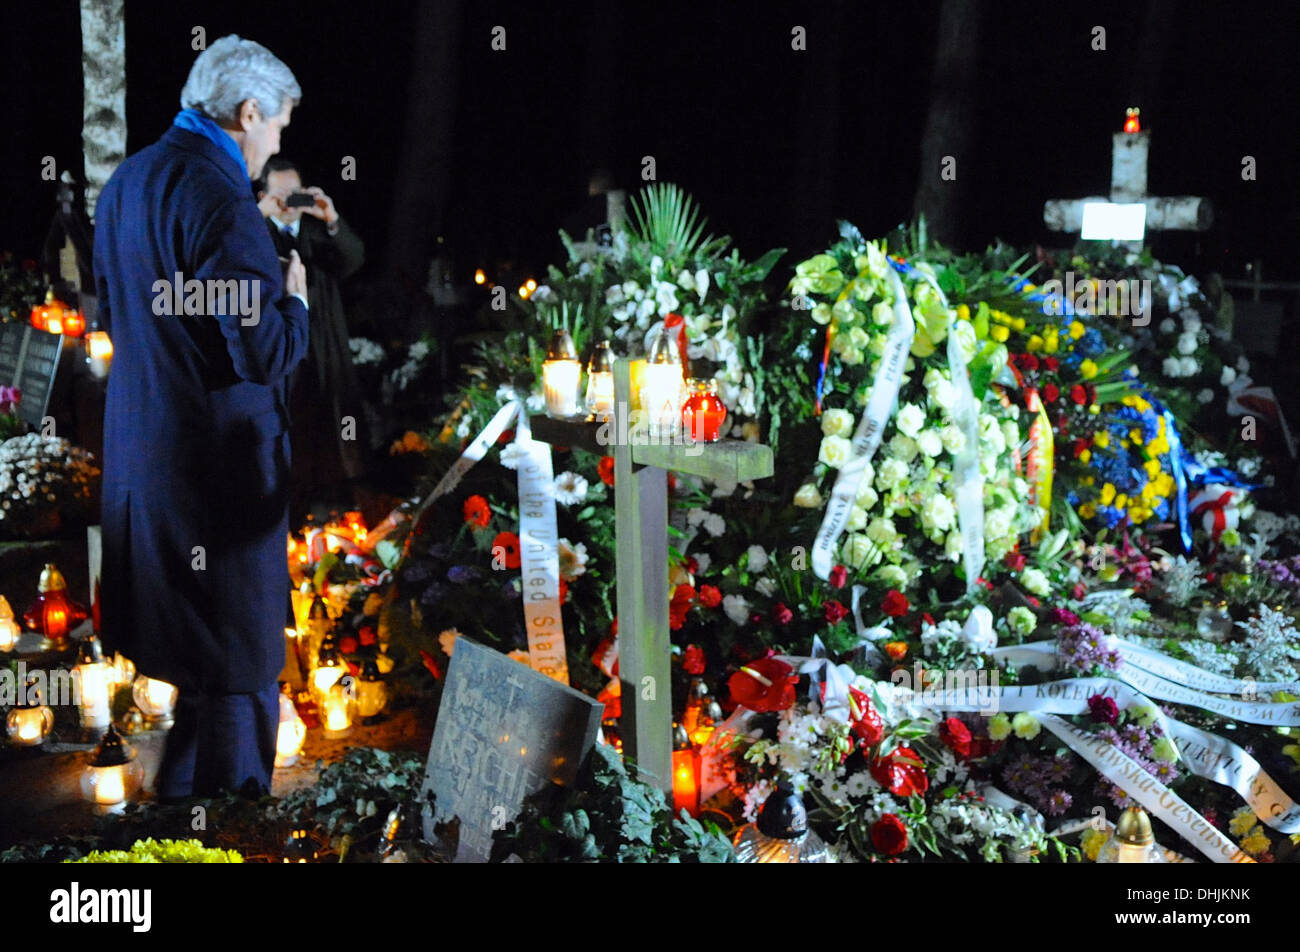 Secretary Kerry Pays Respects at Gravesite of Former Polish Prime Minister Mazowiecki Stock Photo